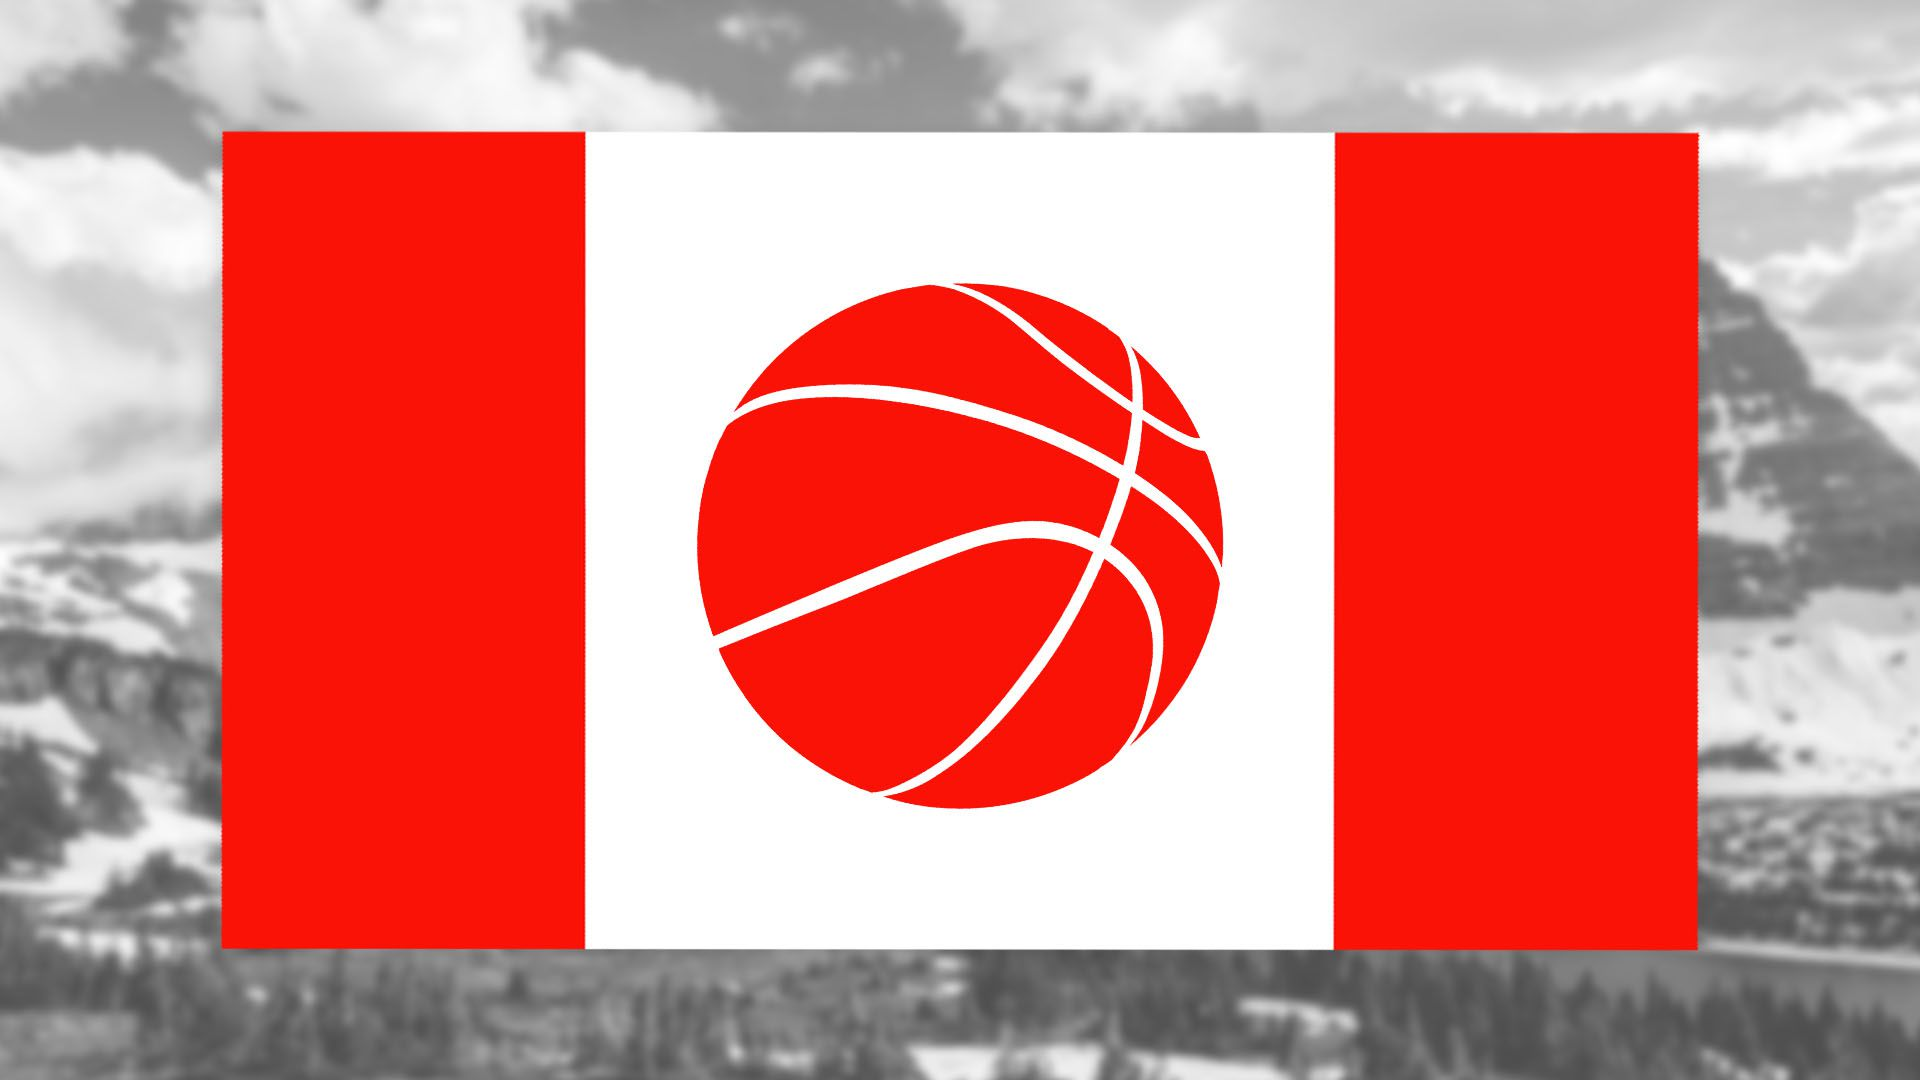 Illustration of Canadian flag with basketball in place of maple leaf